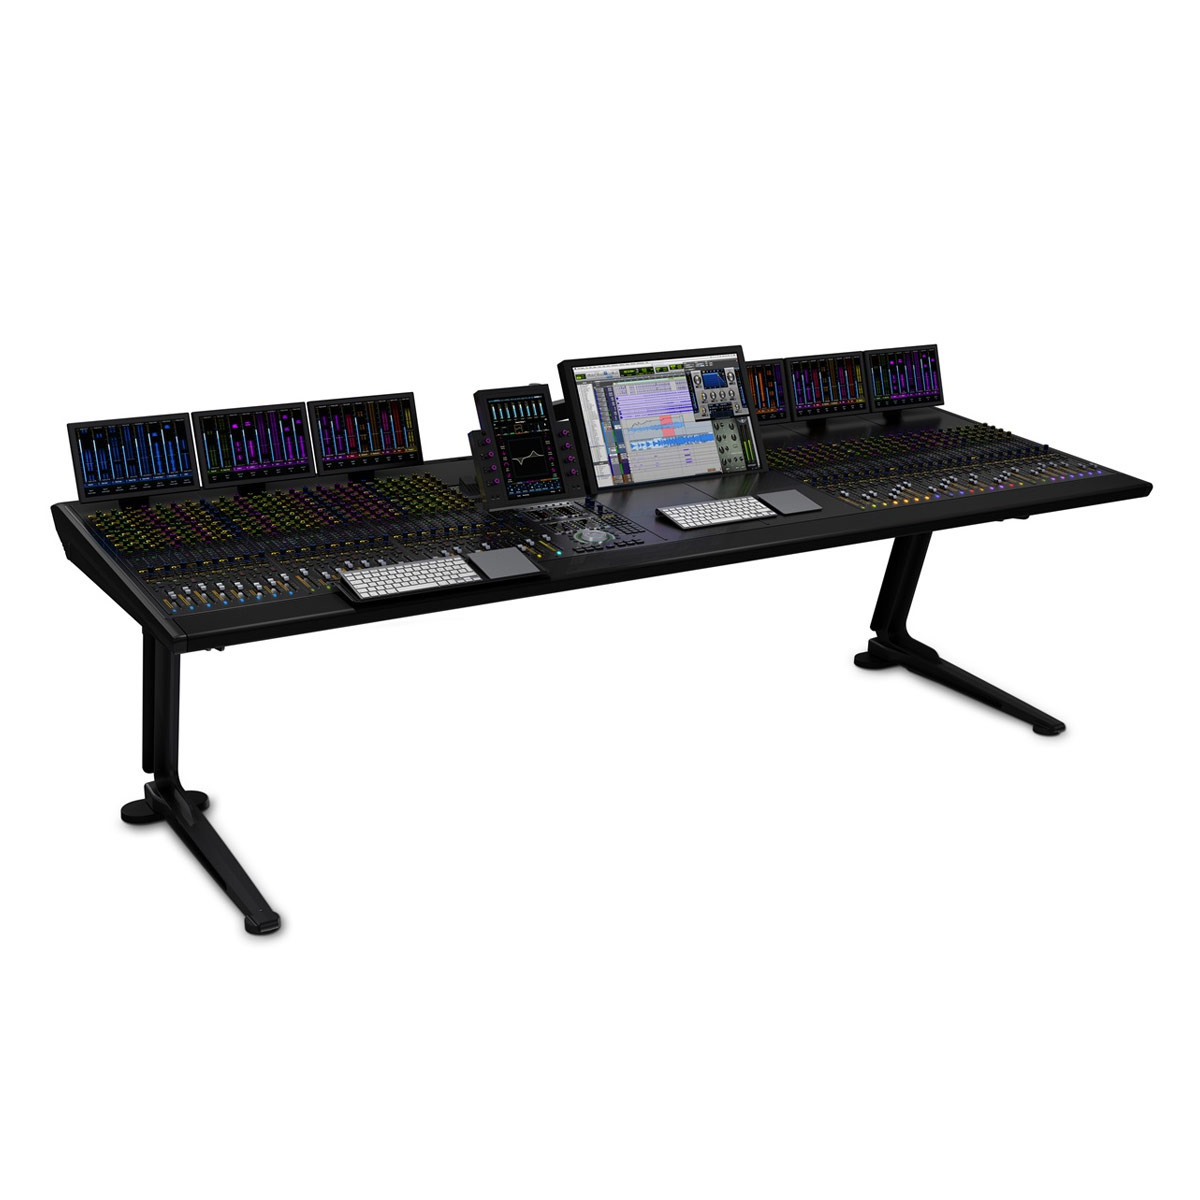 Avid S6 M40 Modular EuCon Control Surface for Pro Tools